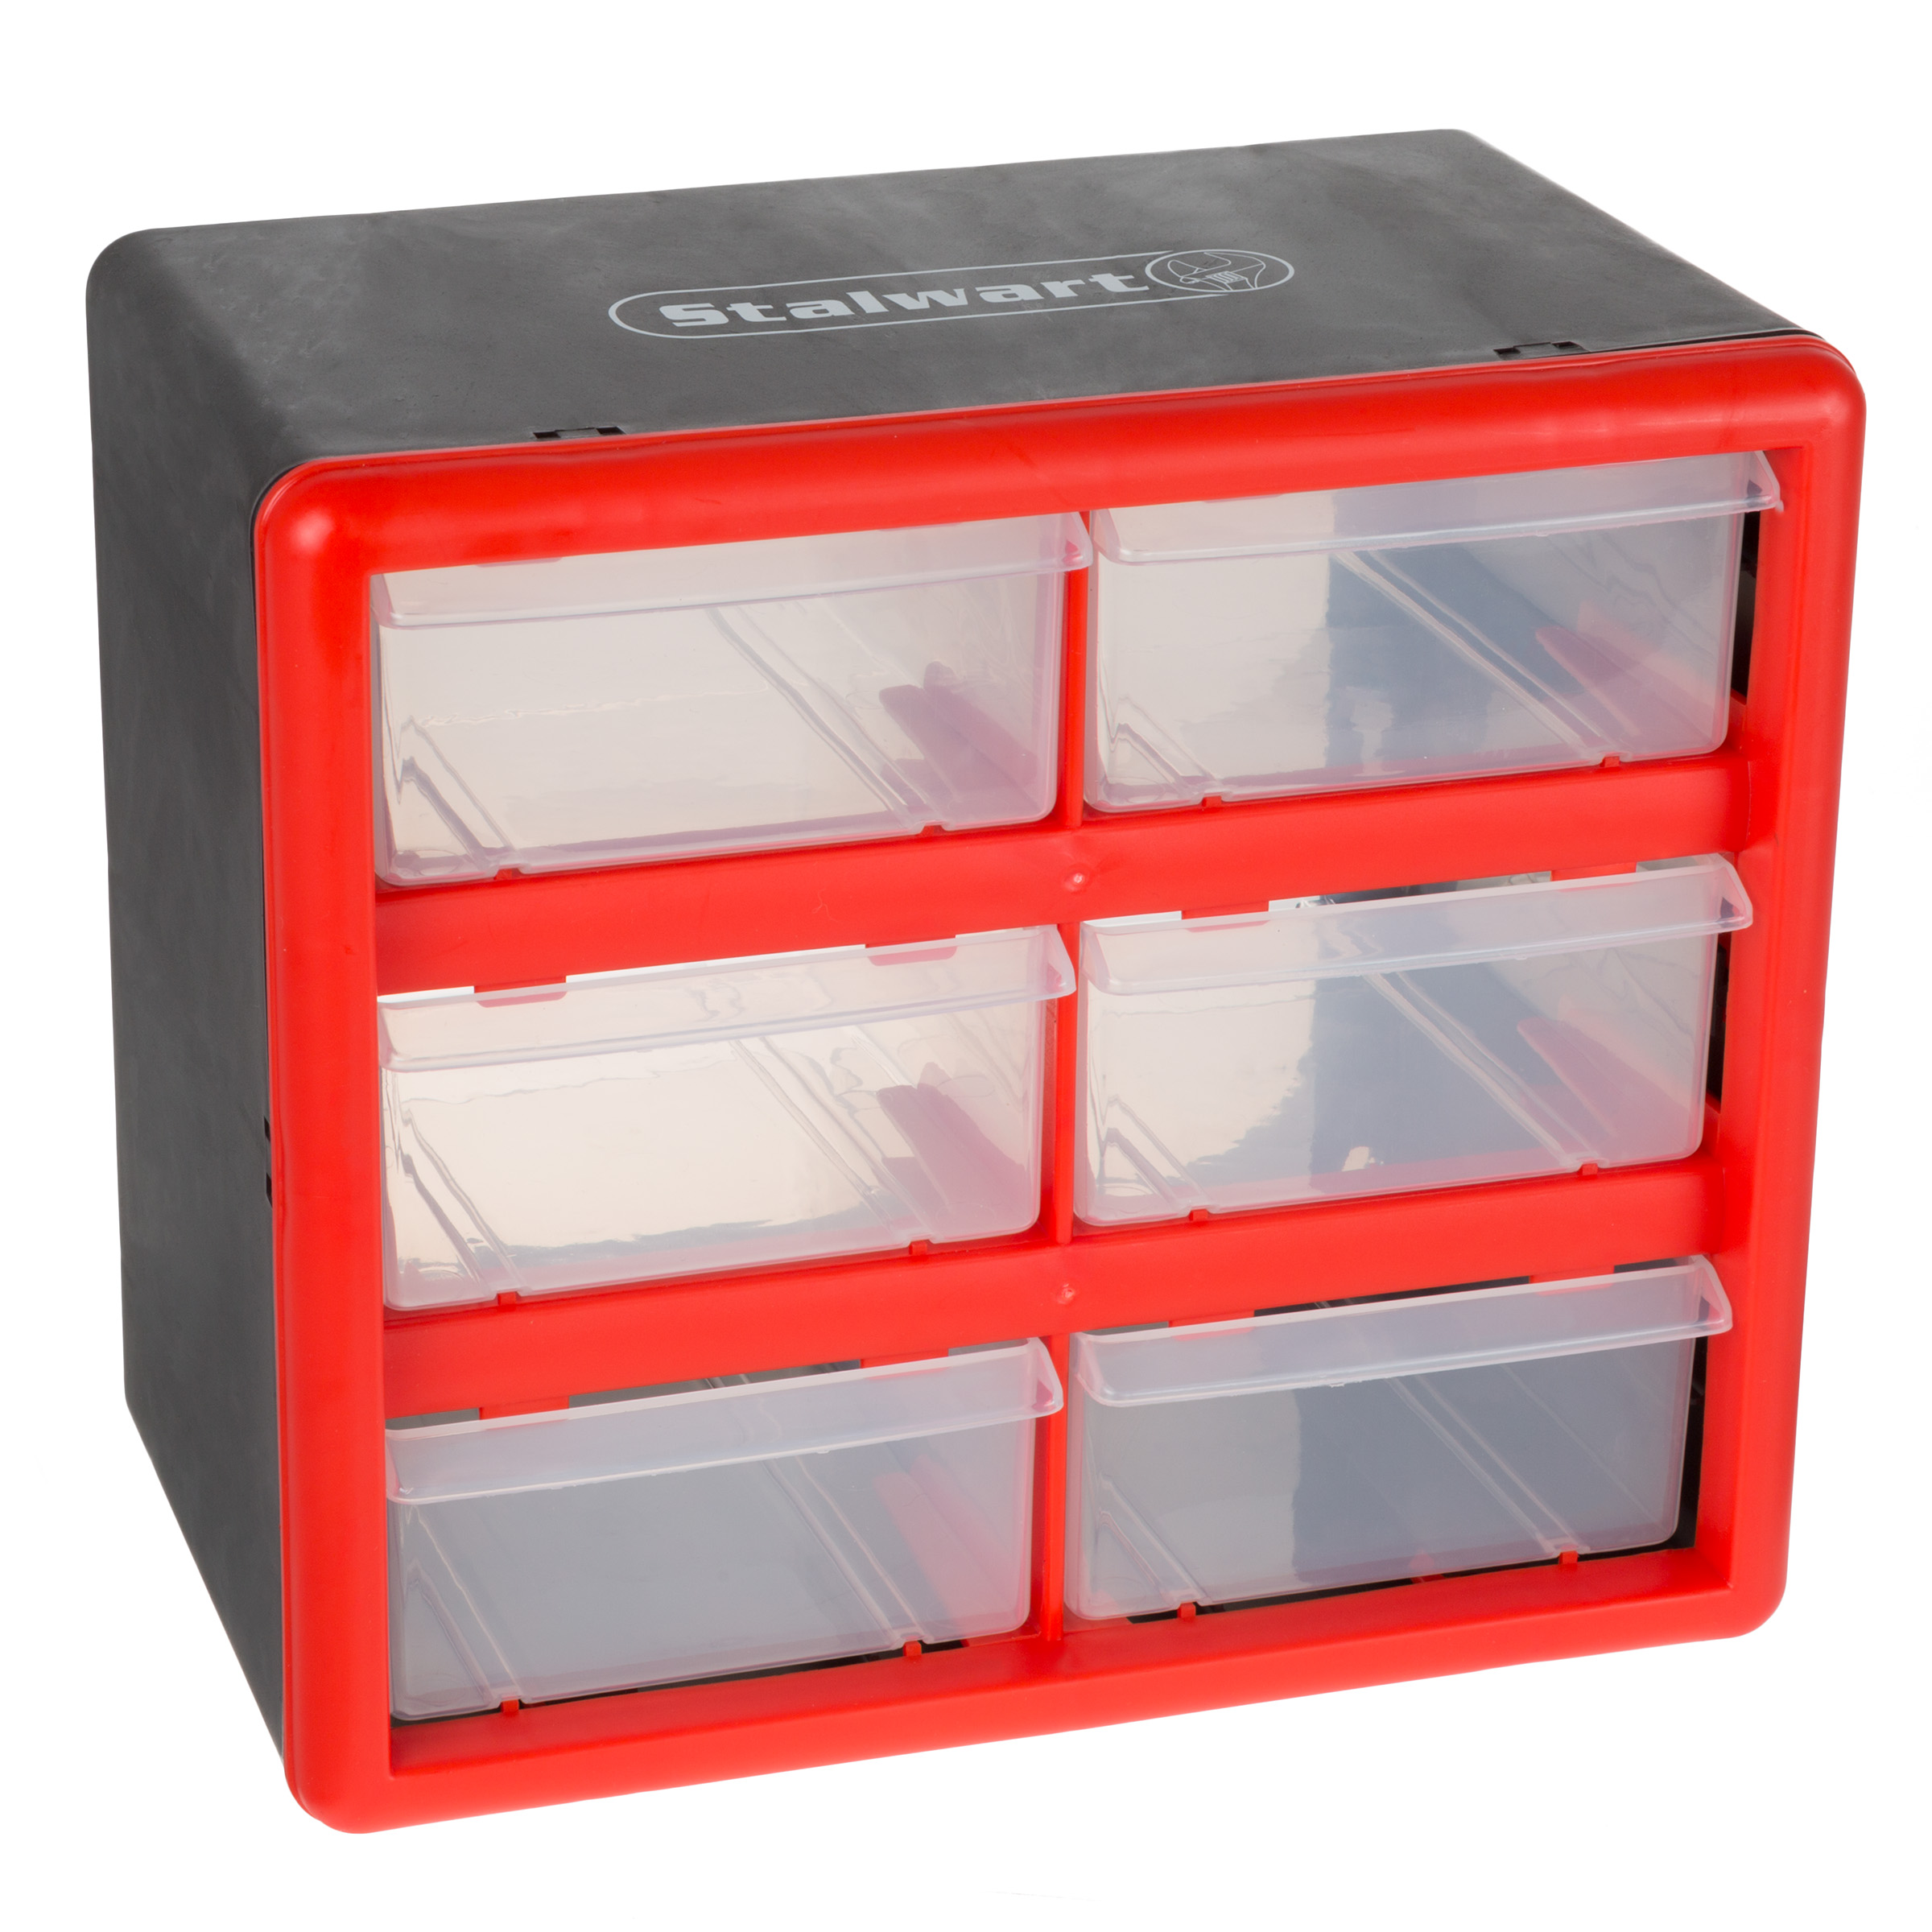 Storage Drawers- 6 Compartment Organizer Desktop or Wall Mountable Container for Hardware, Parts, Craft Supplies, Beads, Jewelry, and More by Stalwart